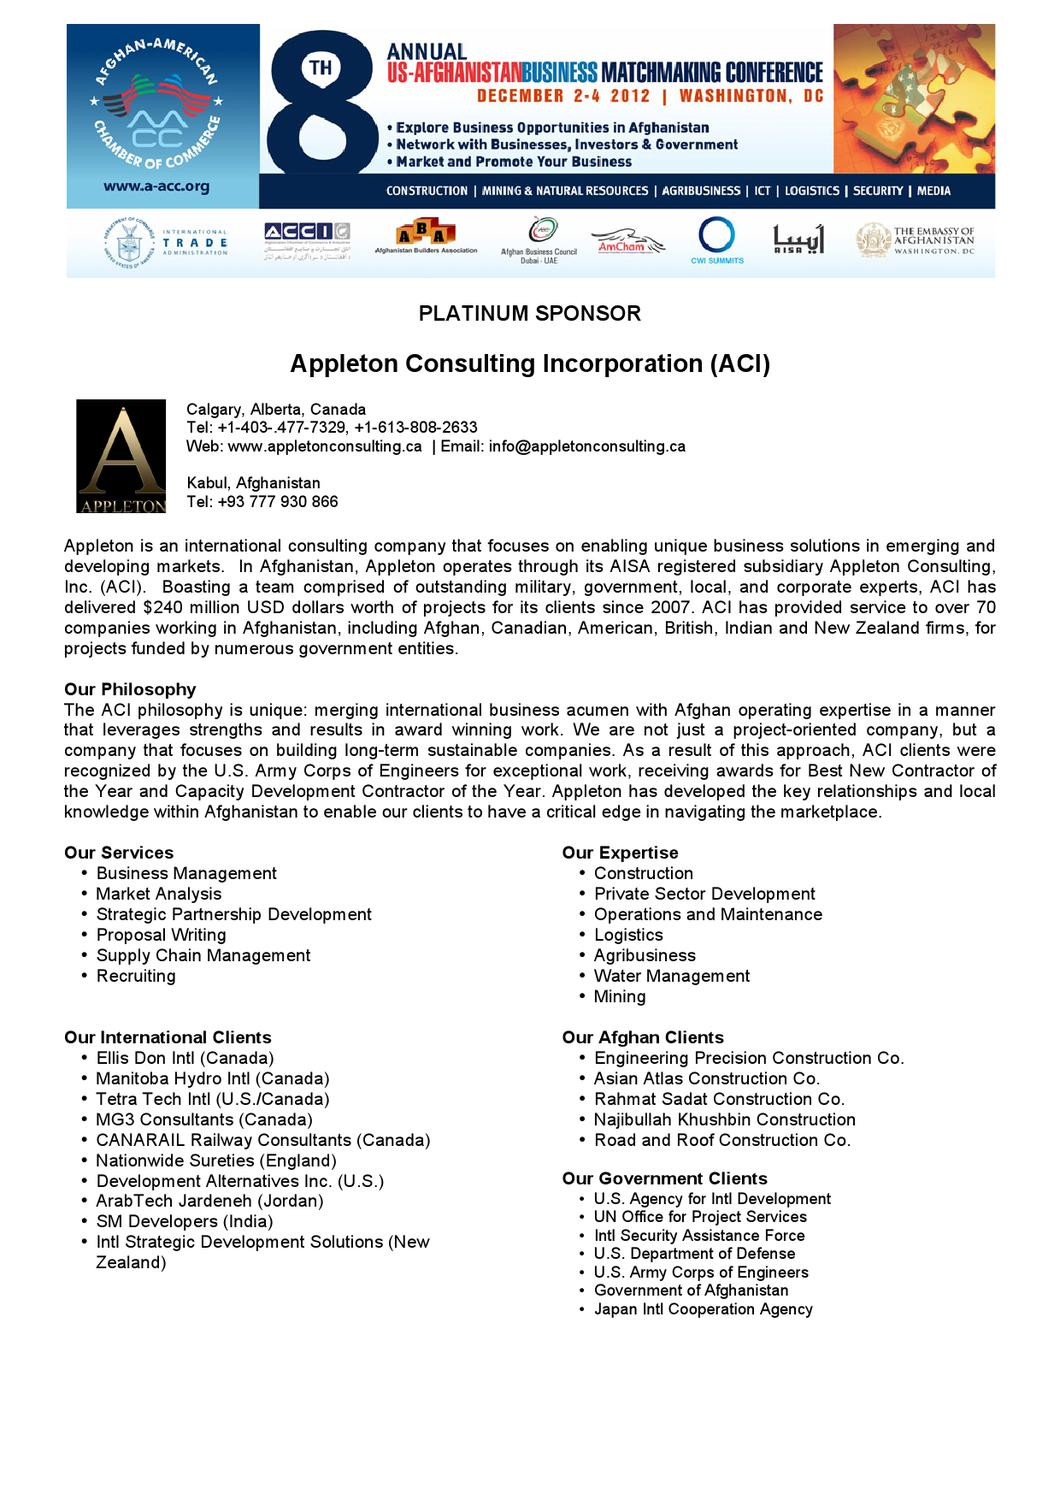 BMC 2012 Sponsors Company Profile by Afghan-American Chamber